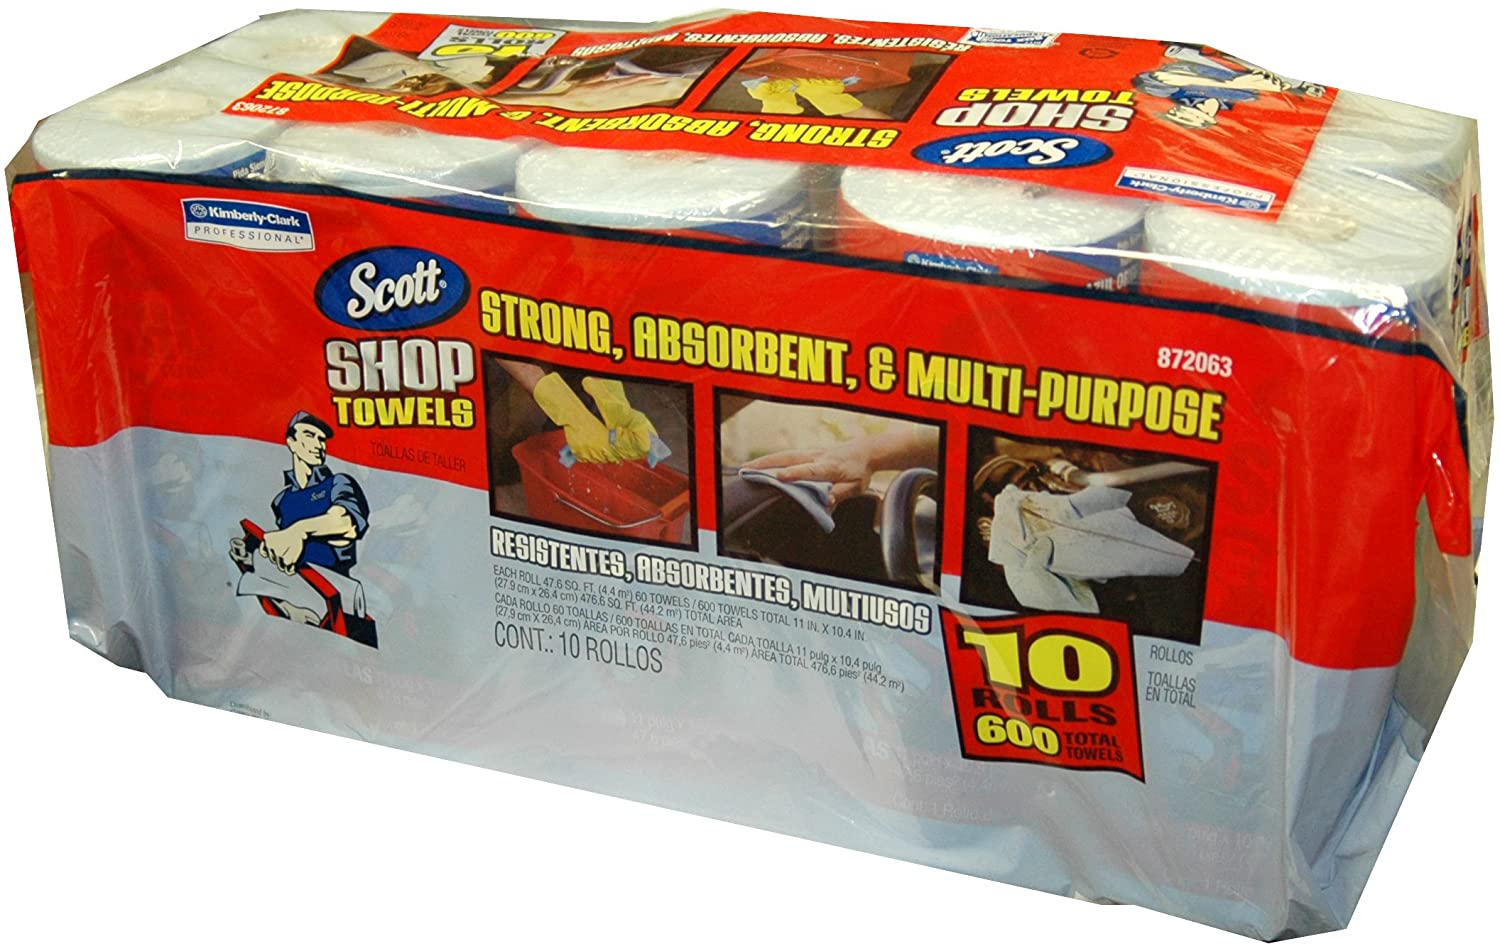 Scott Shop Towel Rolls 10 Pk: Paper Towels: Amazon.com: Industrial & Scientific